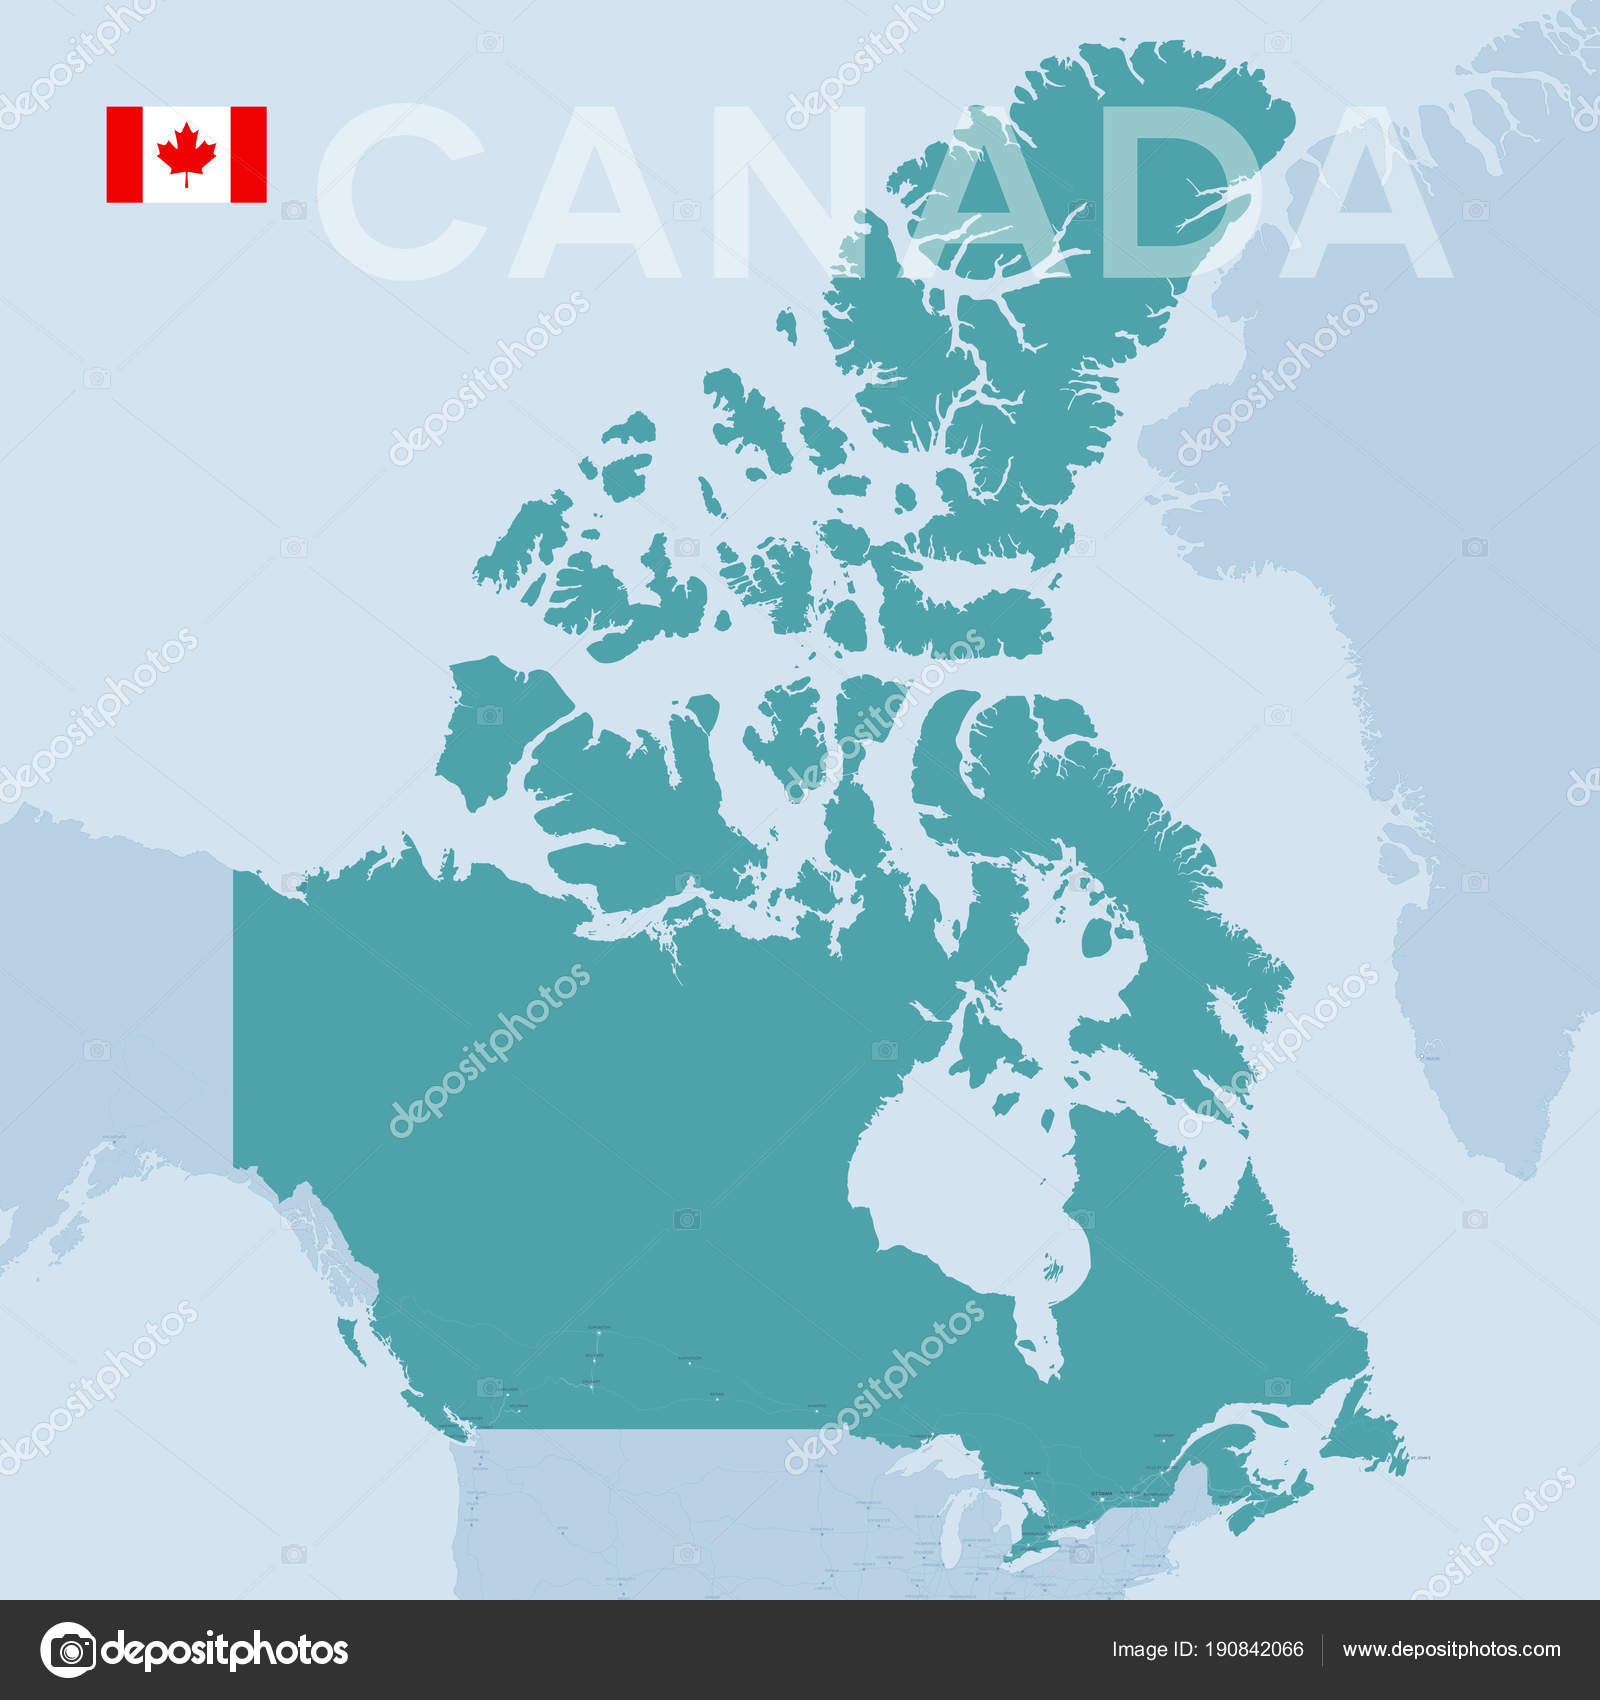 Map Of North America And Canada With Cities.Verctor Map Of Cities And Roads In Canada Stock Vector C Snyde